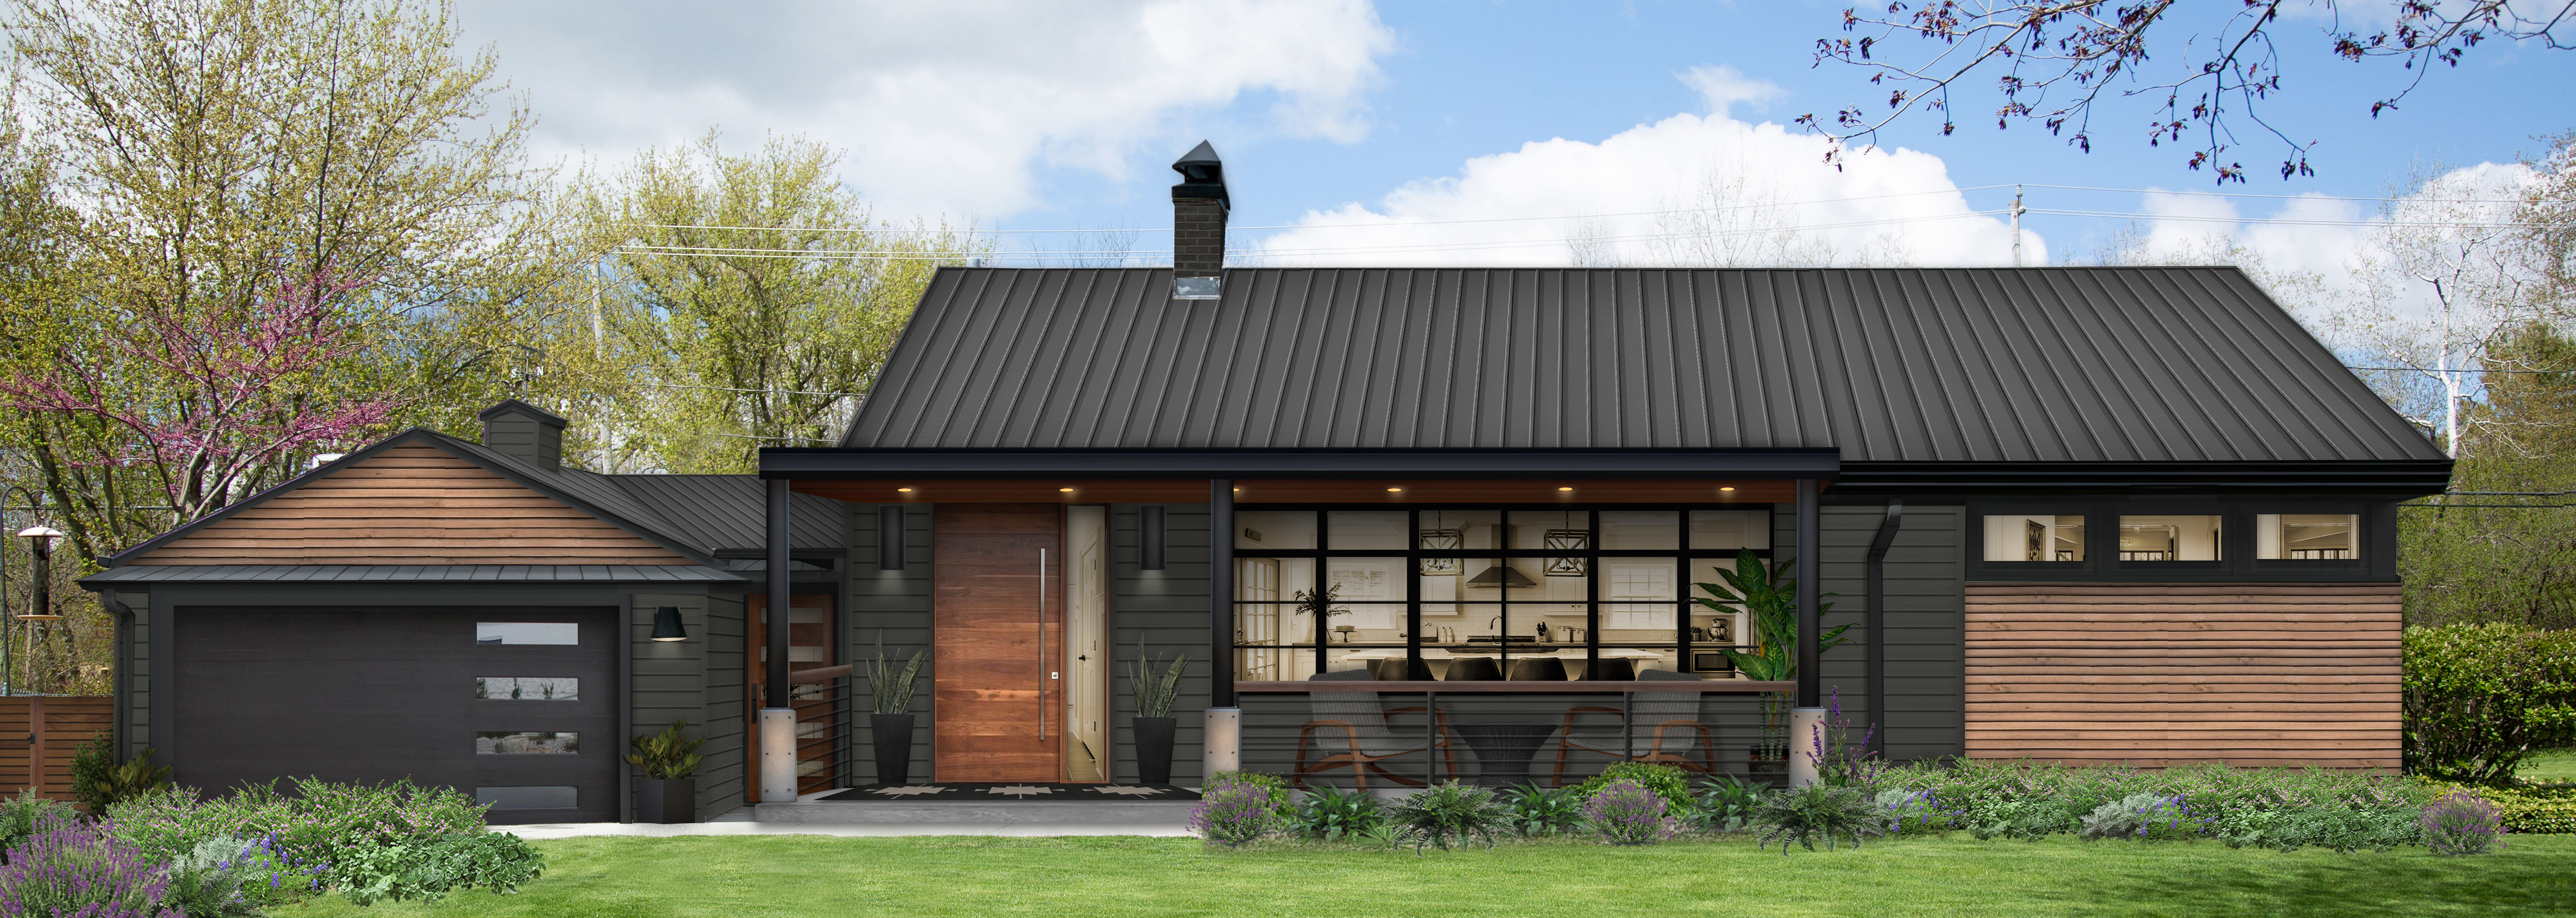 Virtual exterior design of a mid-century modern ranch painted in Iron Ore with wood panelling accents